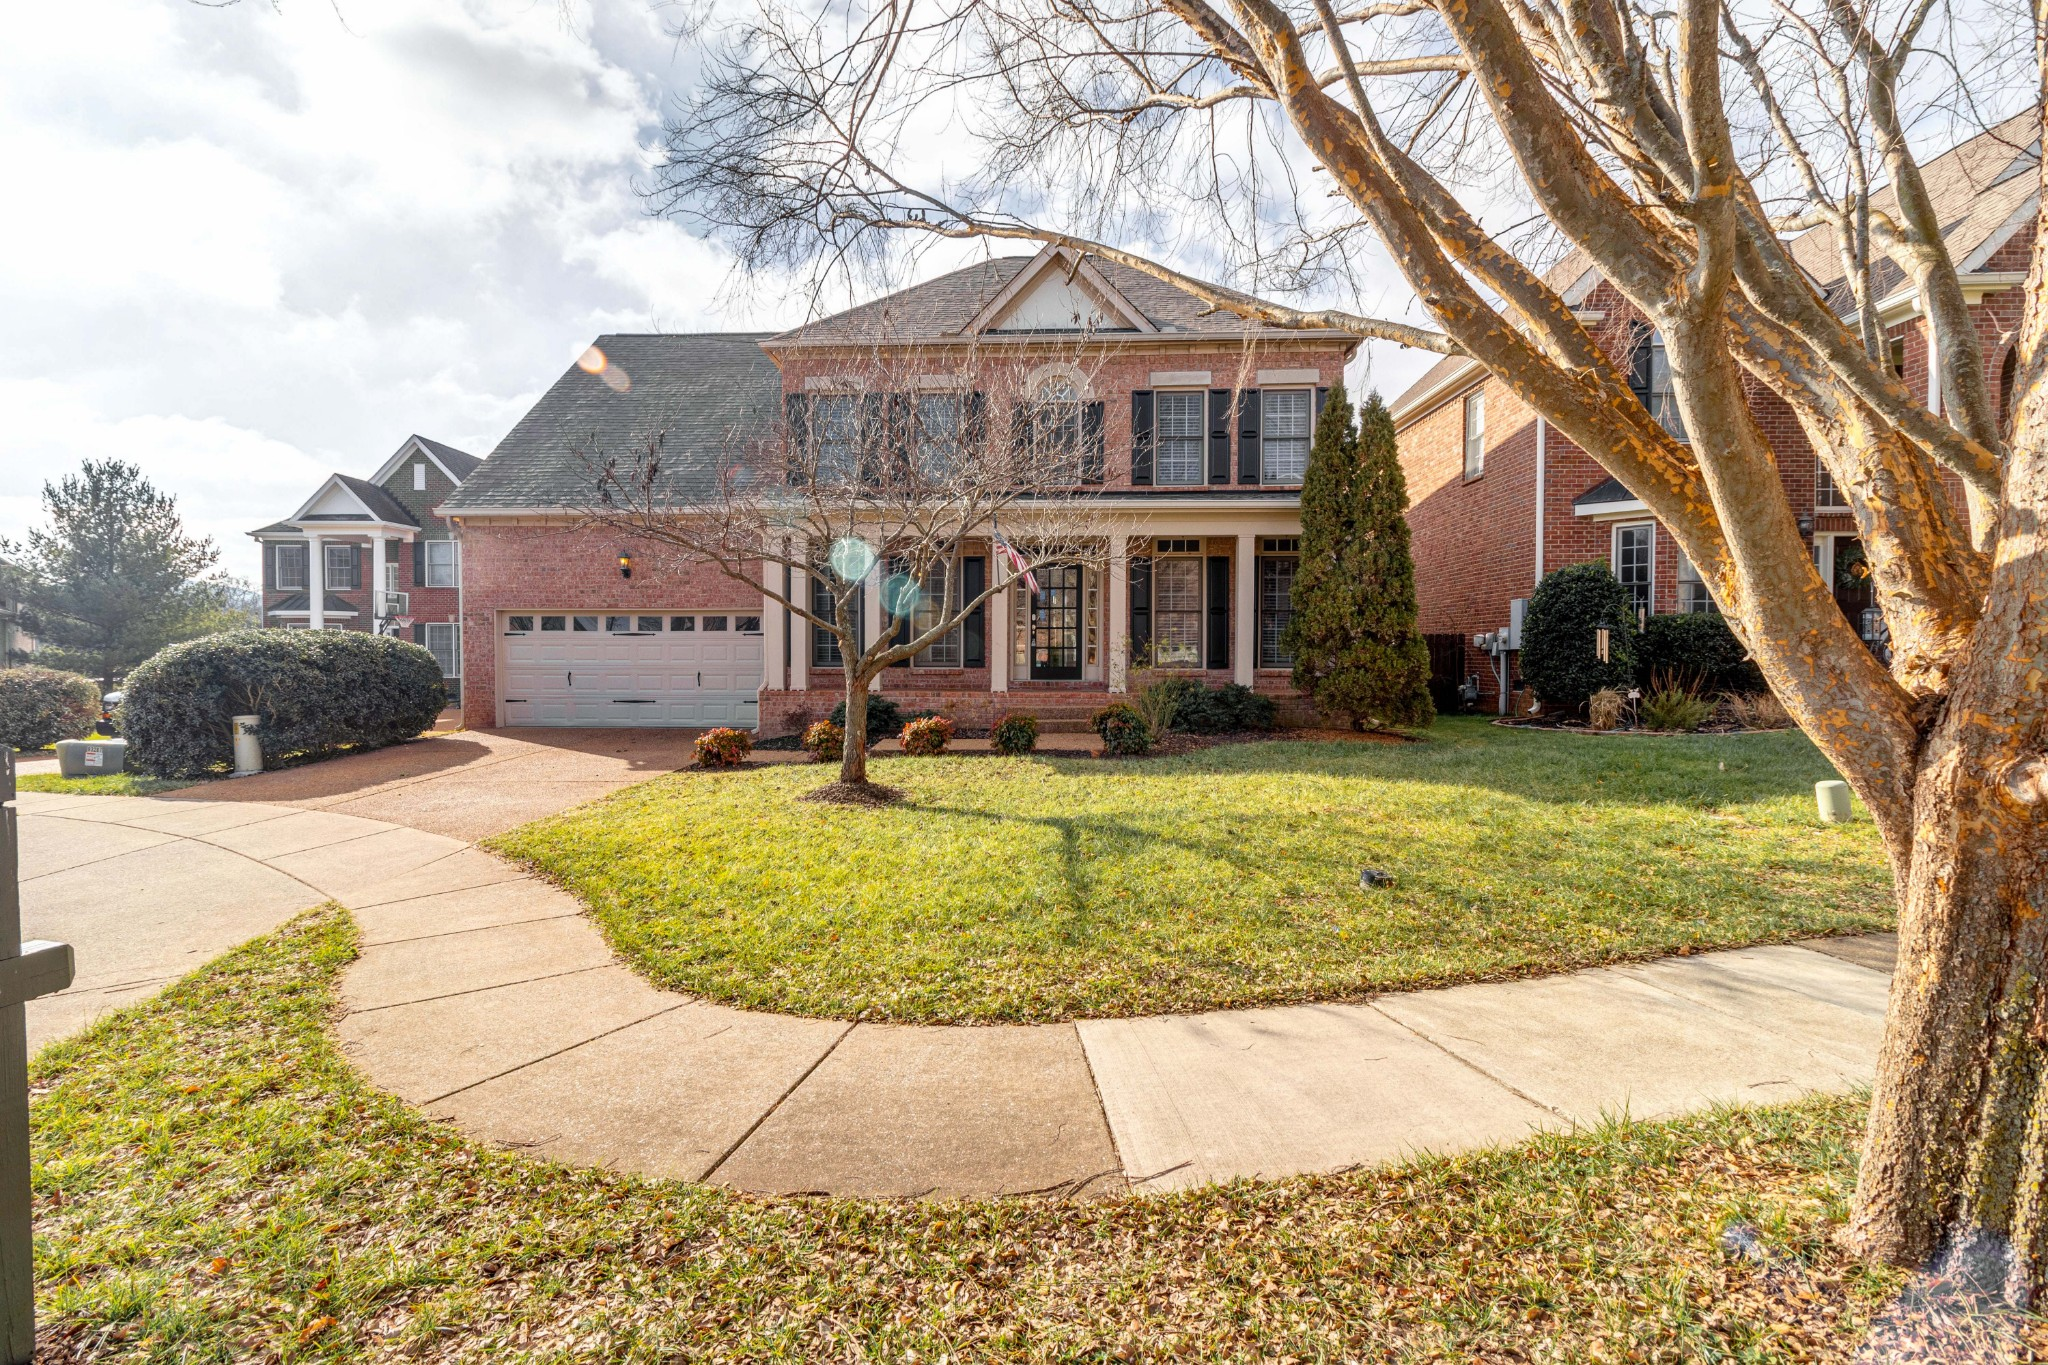 3280 Locust Hollow Property Photo - Nolensville, TN real estate listing